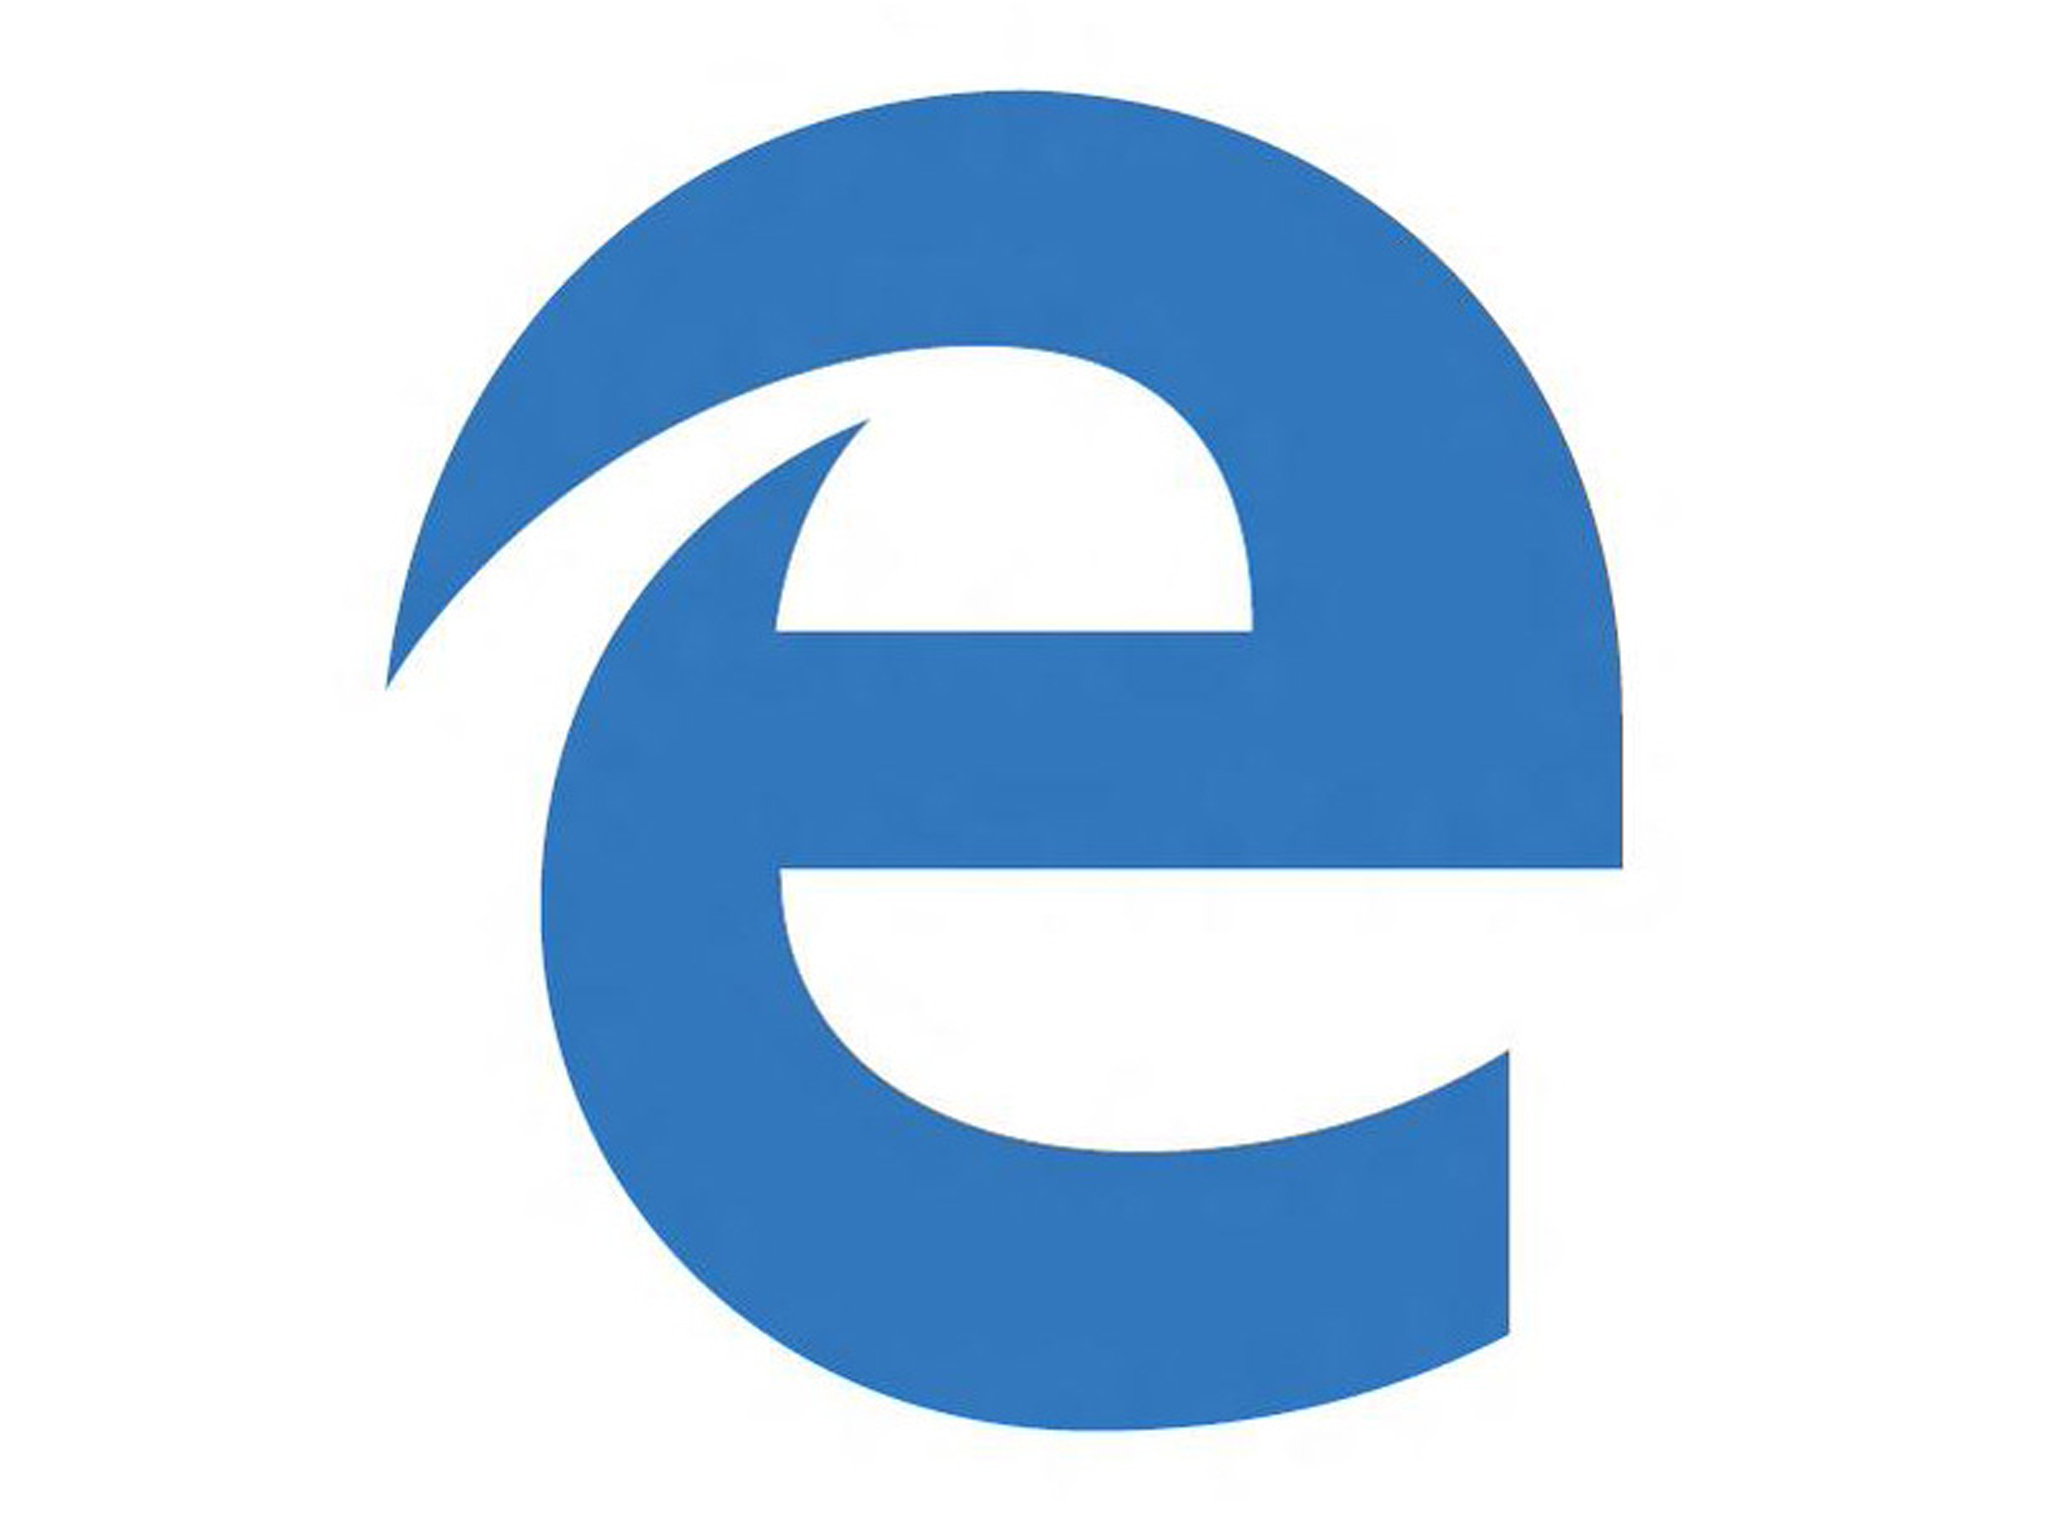 Microsoft Edge may be the greatest browser of all time